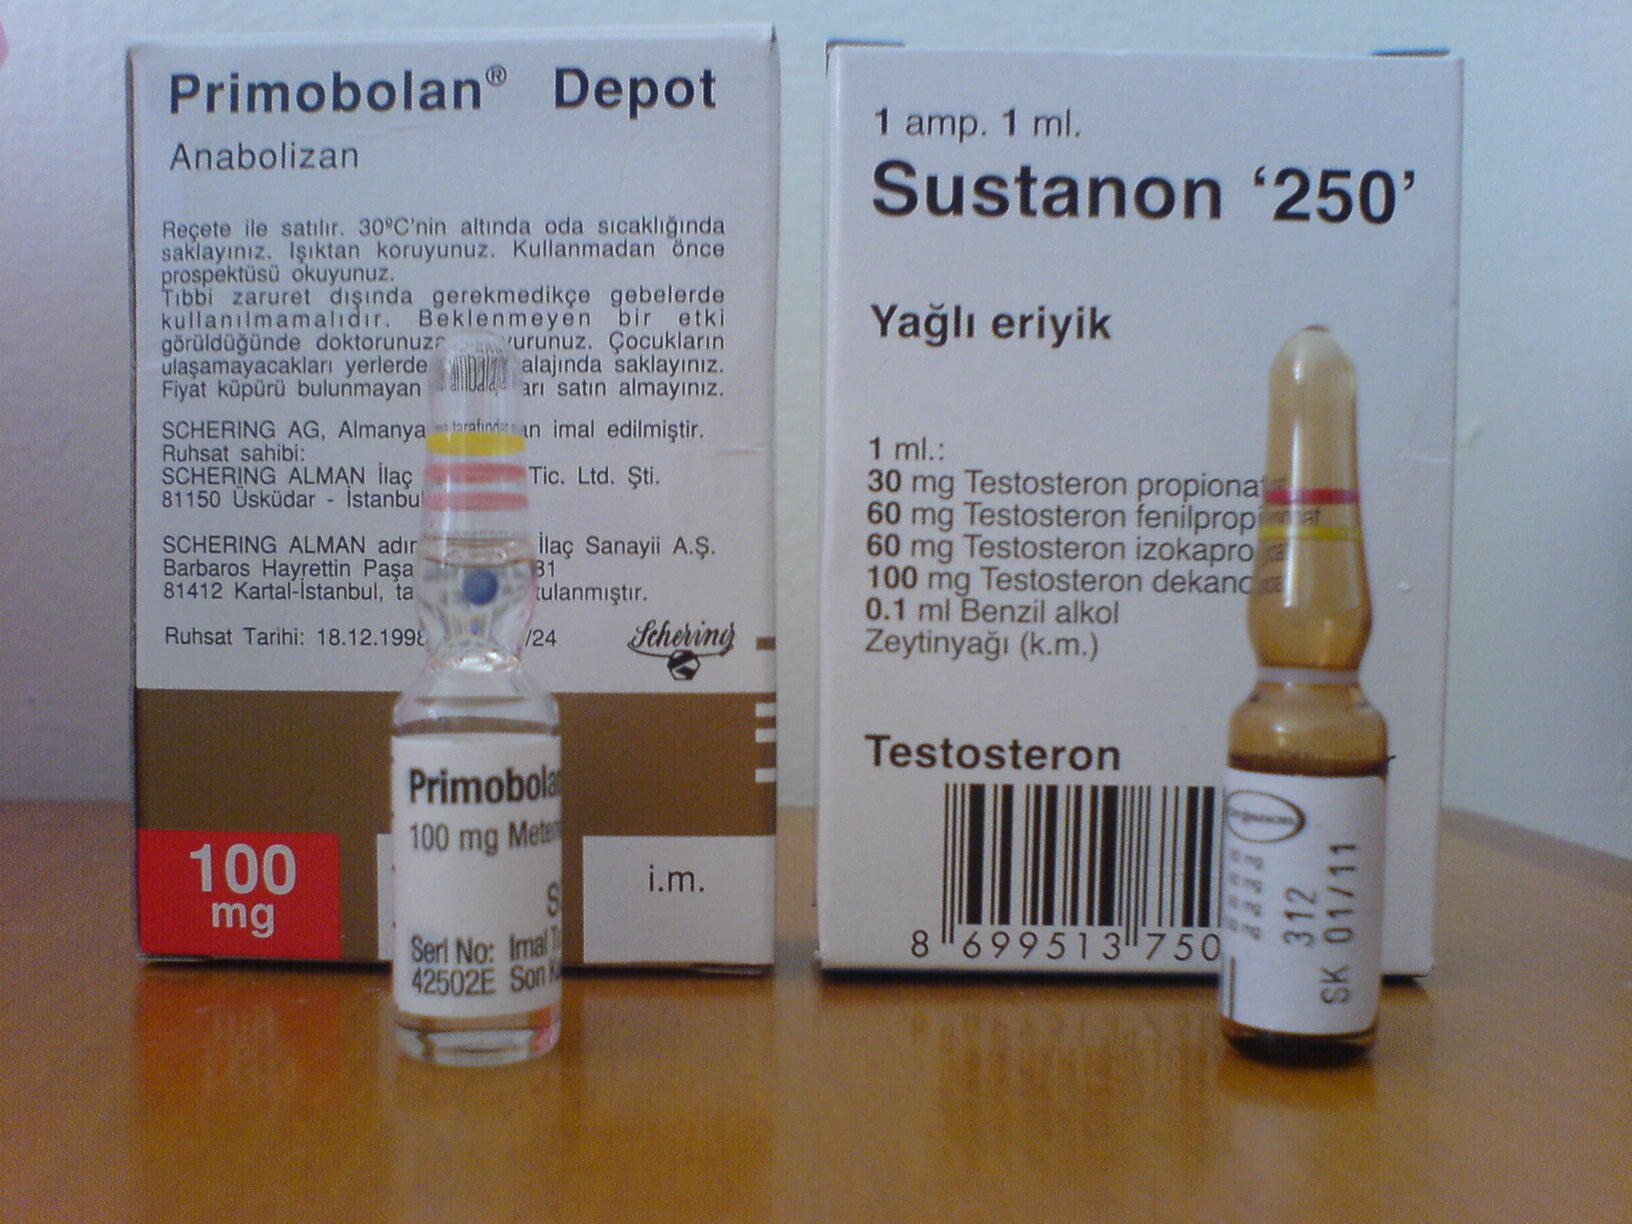 of real Sustanon and Primobolan . bought and tryed them in Turkey